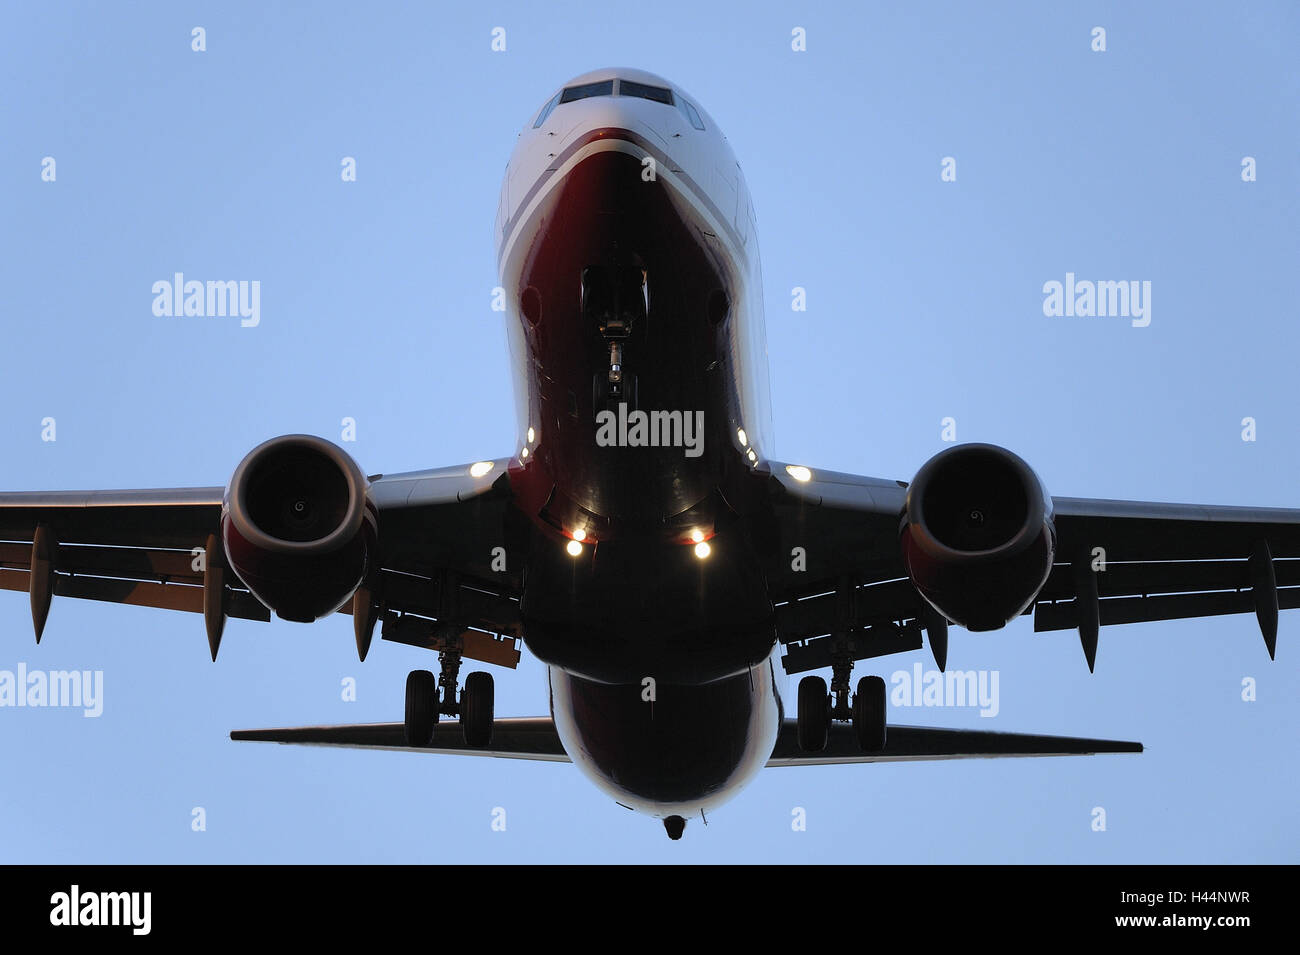 Airplane, heaven, cloudless, - Stock Image